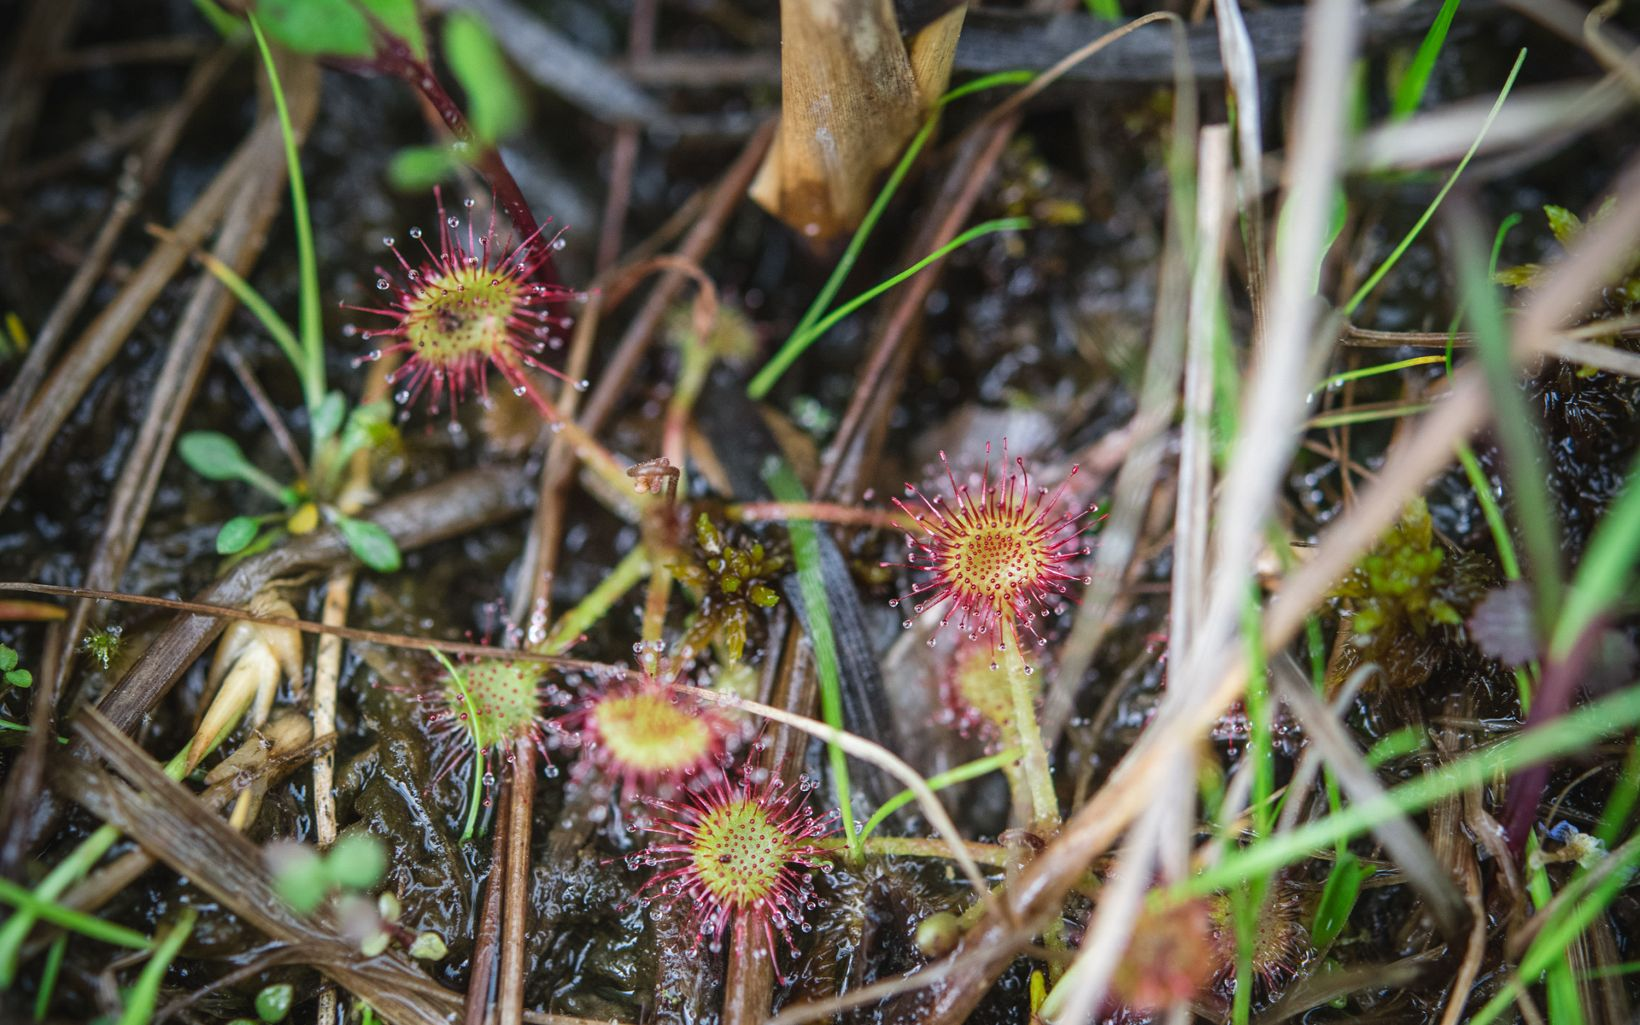 Sundew hidden in the grass.